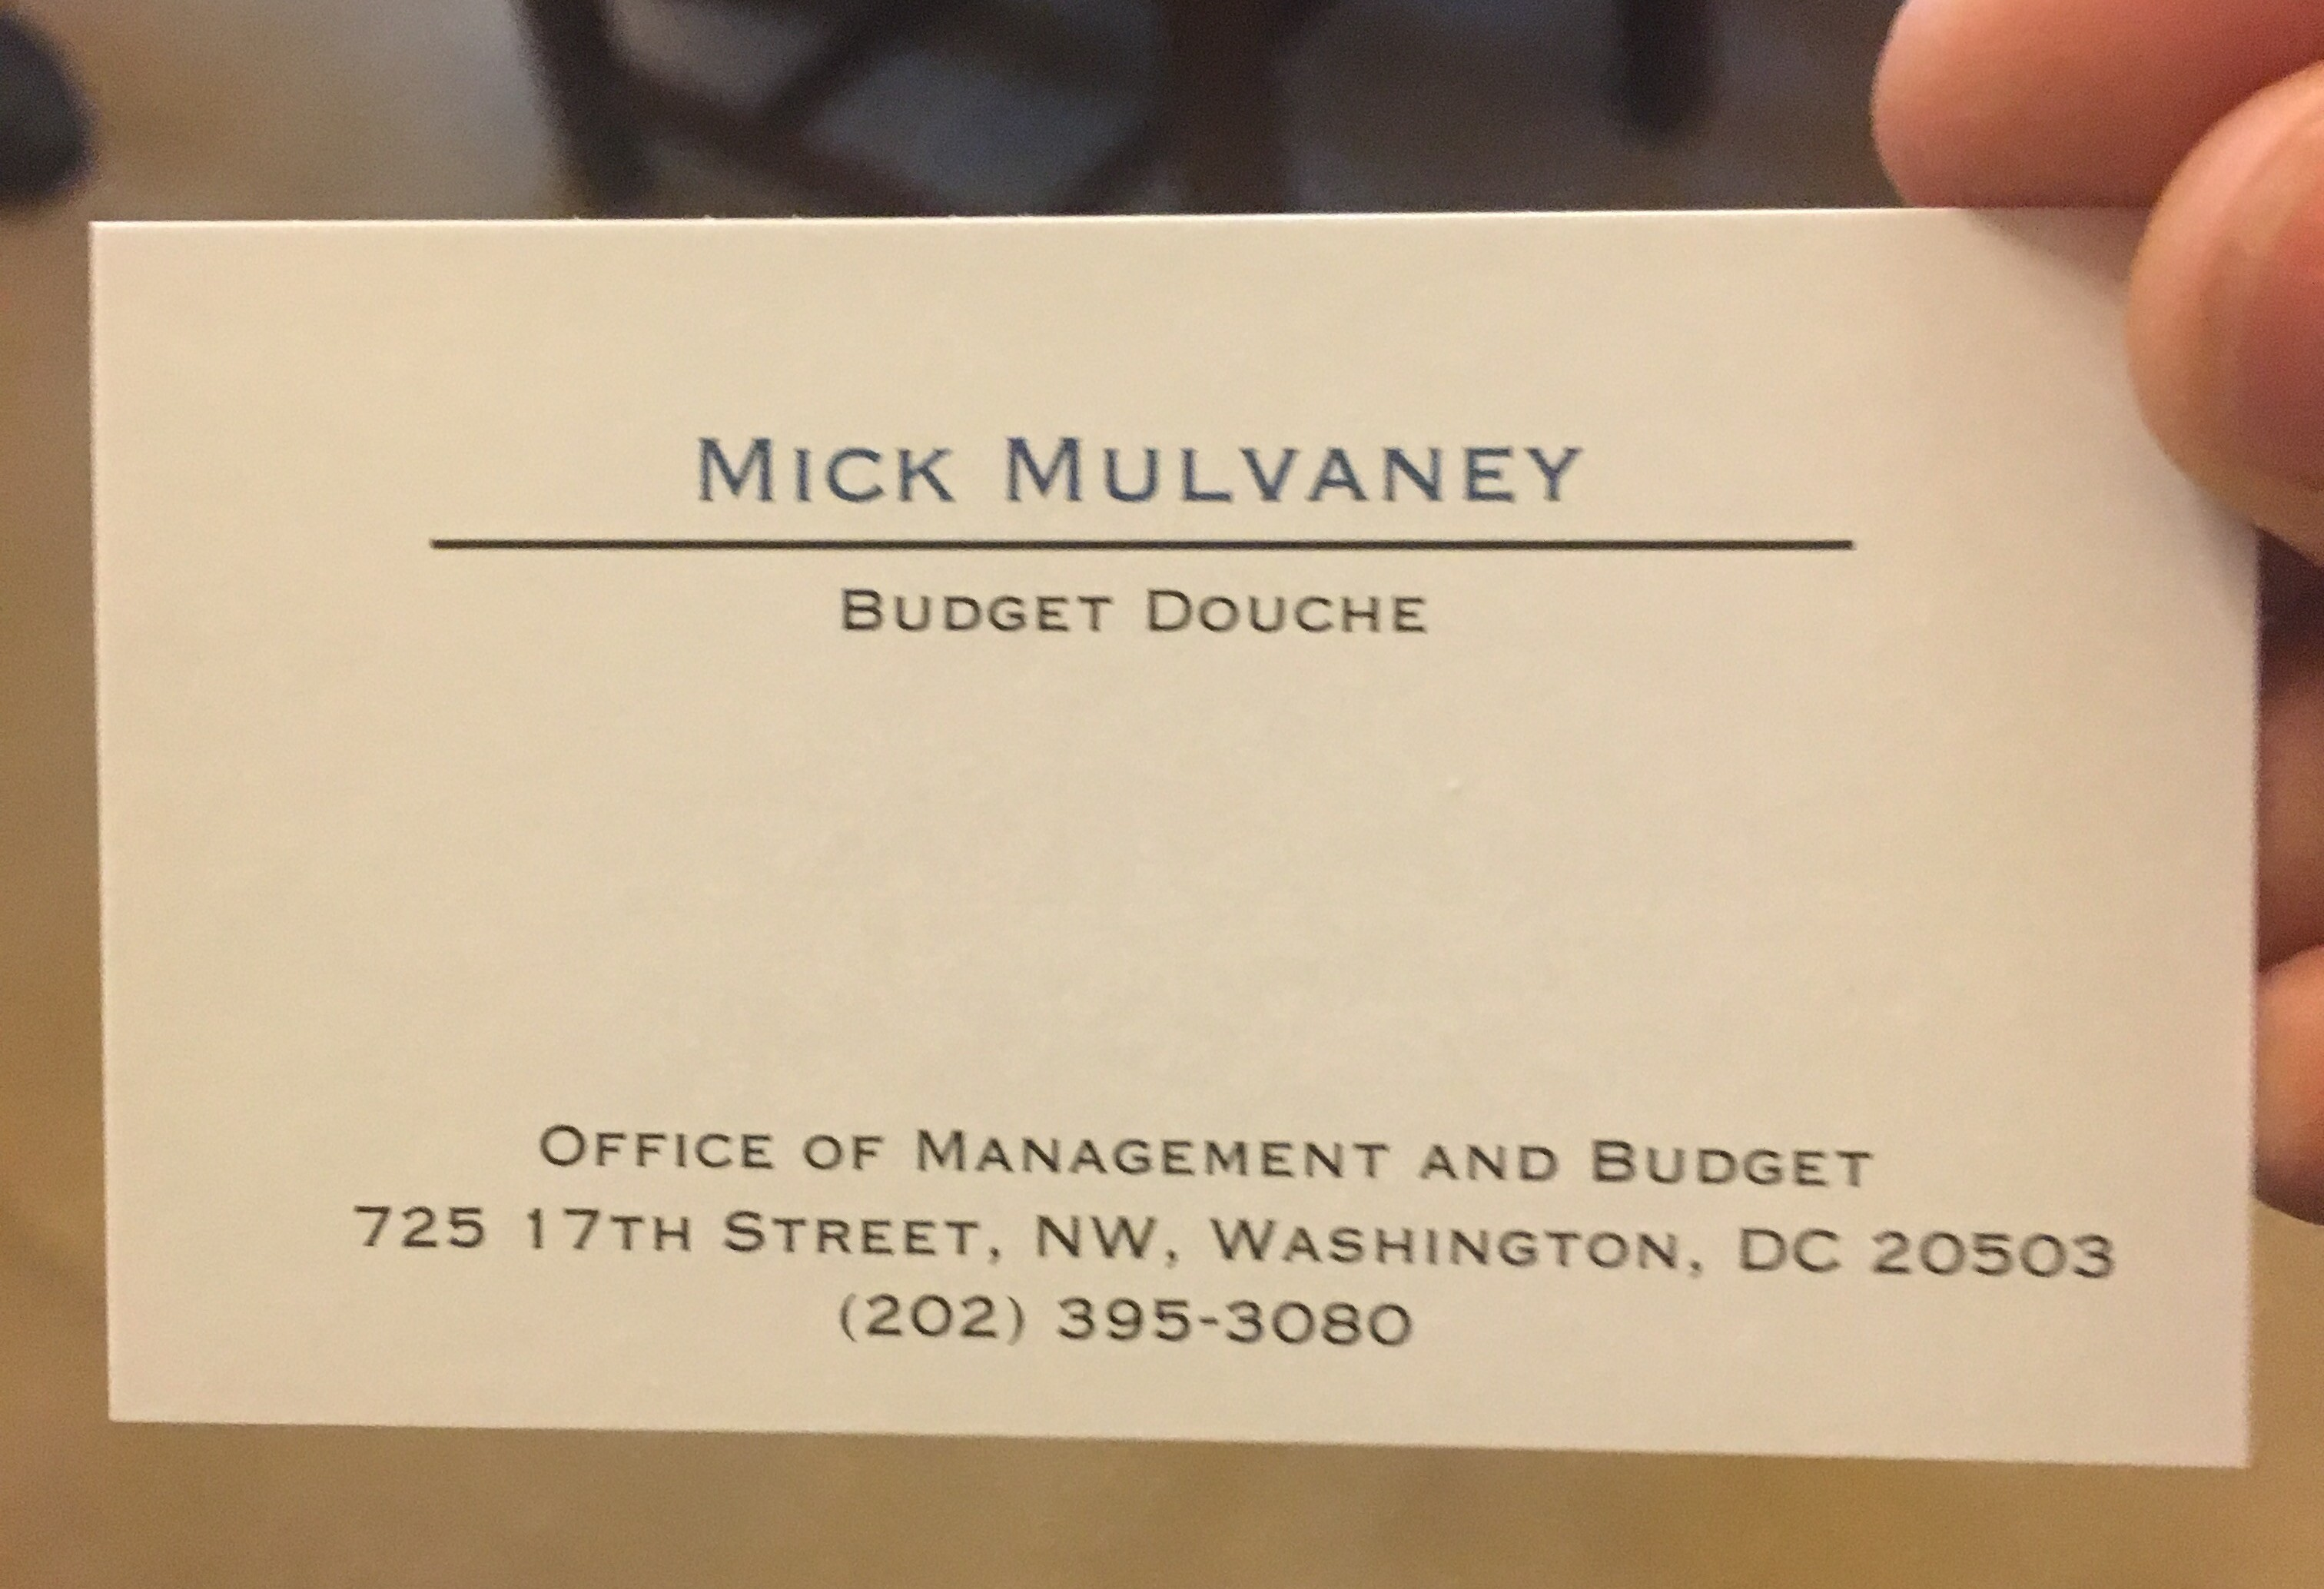 Kind protesters provided mick mulvaney with budget douche business you know you hit the big time when these guys started trolling me with fake business cards mulvaney told the washington examiner during a recent colourmoves